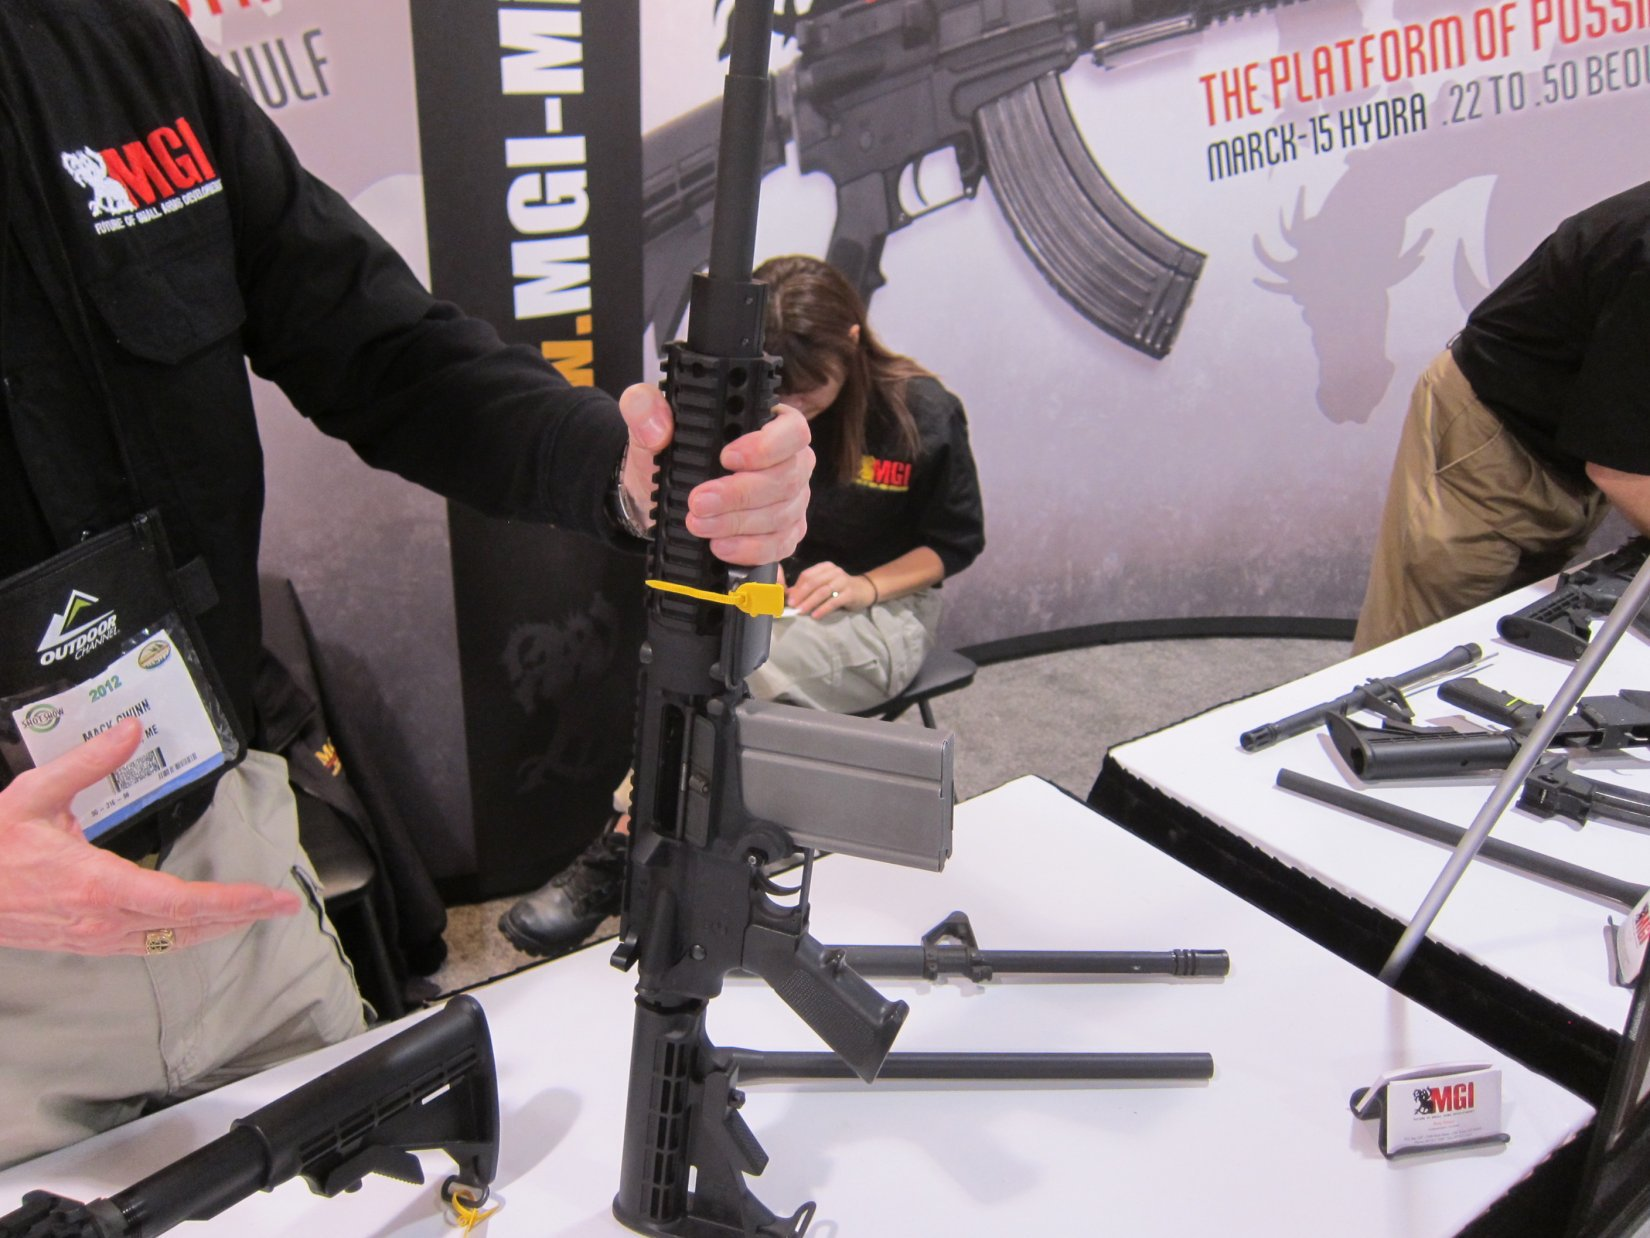 MGI Hydra Modular 7.62mm NATO/.308 Win. Tactical AR (AR-15) Rifle/Carbine/SBR (Short Barreled Rifle) Conversion Kit Prototype with Modular Lower Receiver, 7.62mm Magwell and Modified M14 Mag (Photos and Video!)